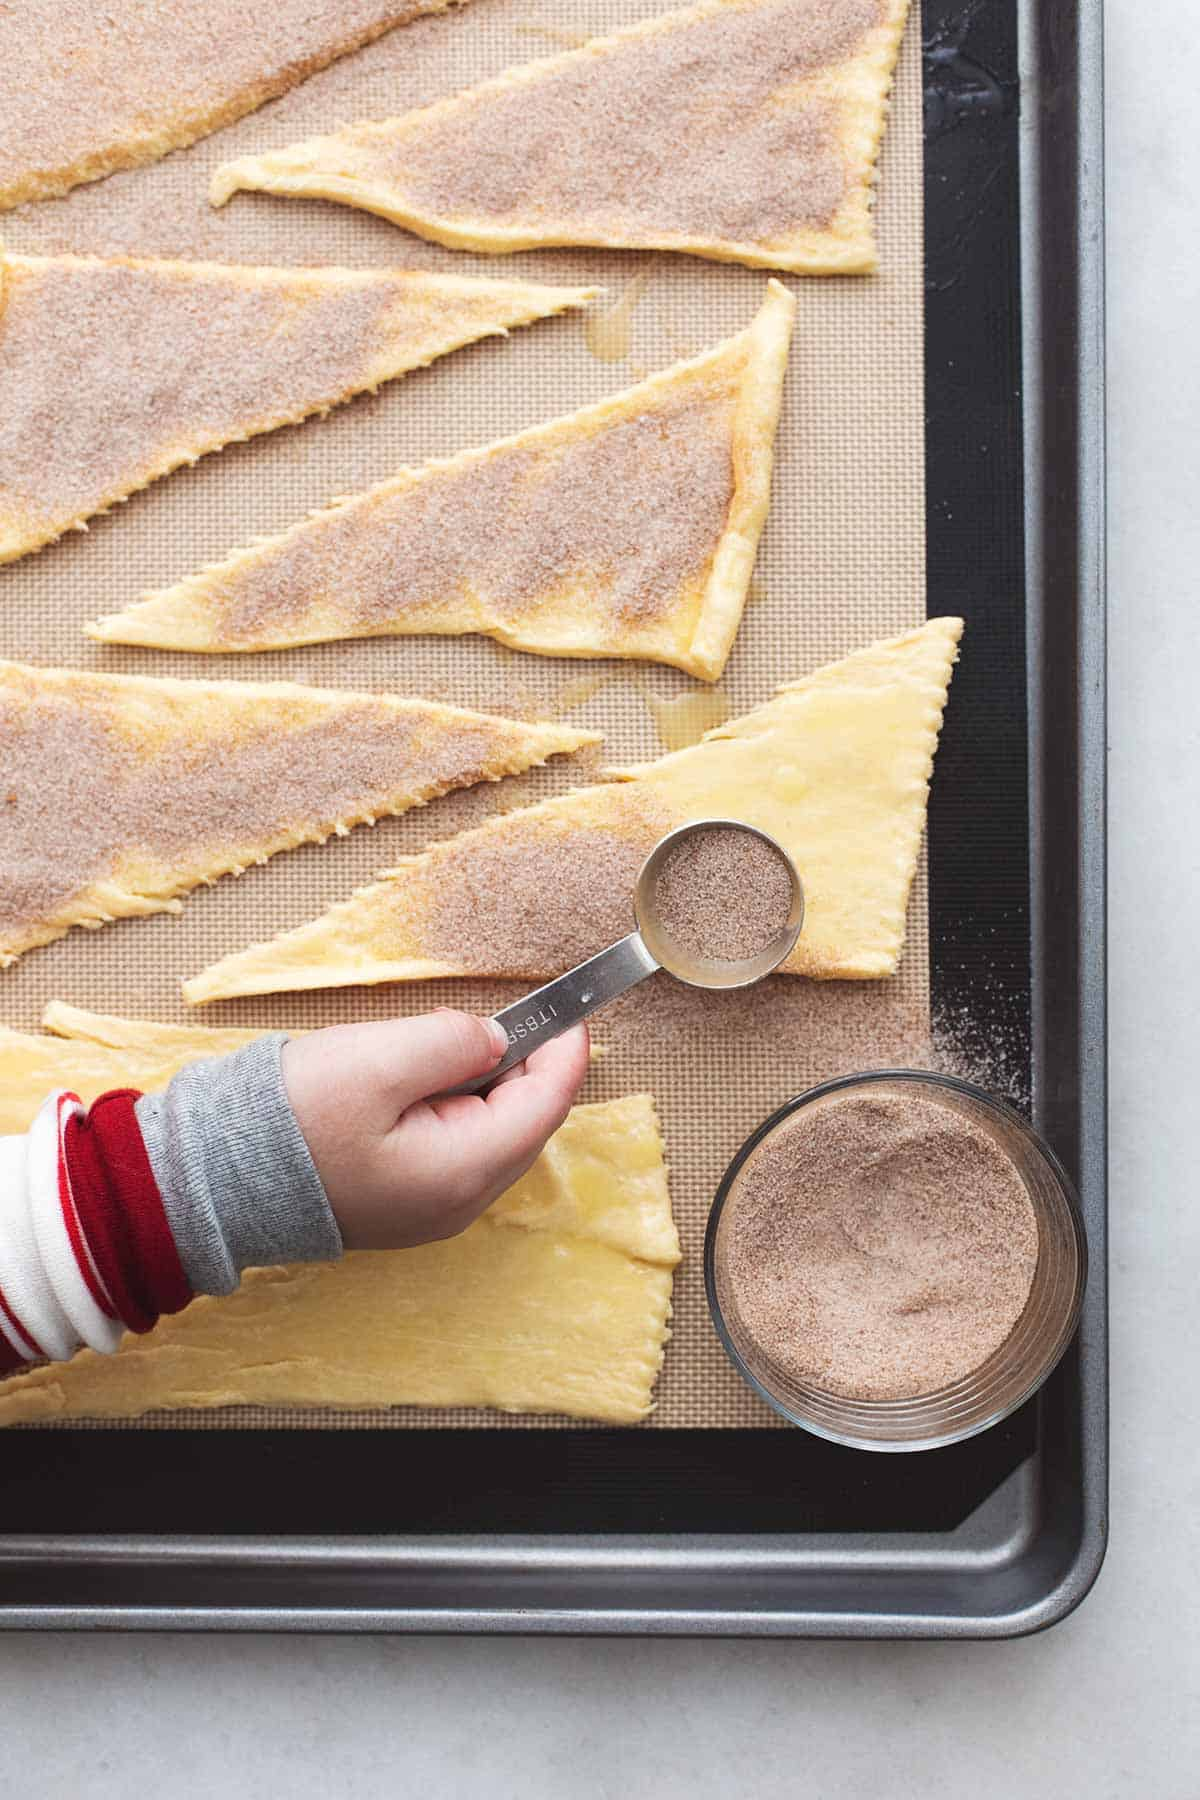 childs hand sprinkling cinnamon and sugar over buttered unbaked crescent triangles